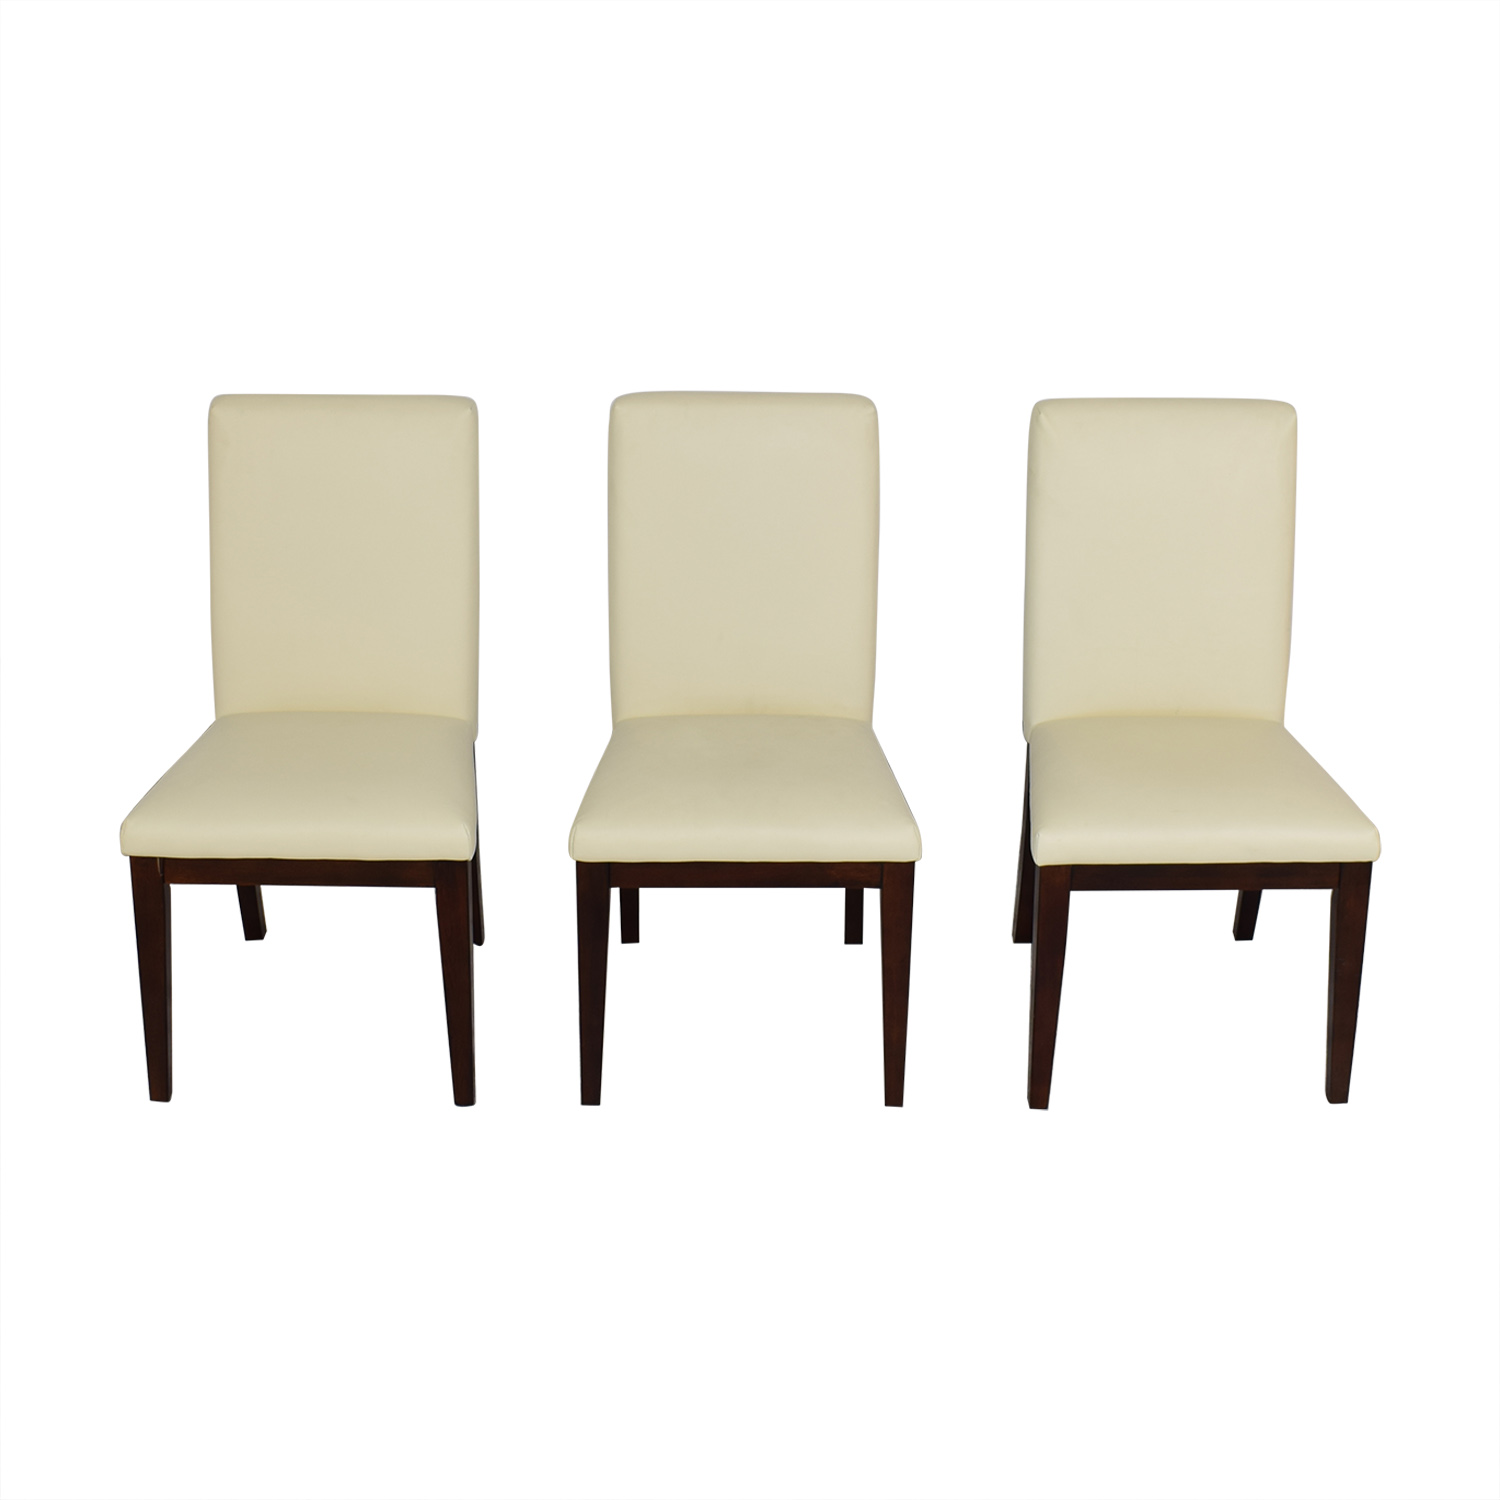 Remarkable 72 Off Macys Macys Dining Chairs Chairs Pdpeps Interior Chair Design Pdpepsorg